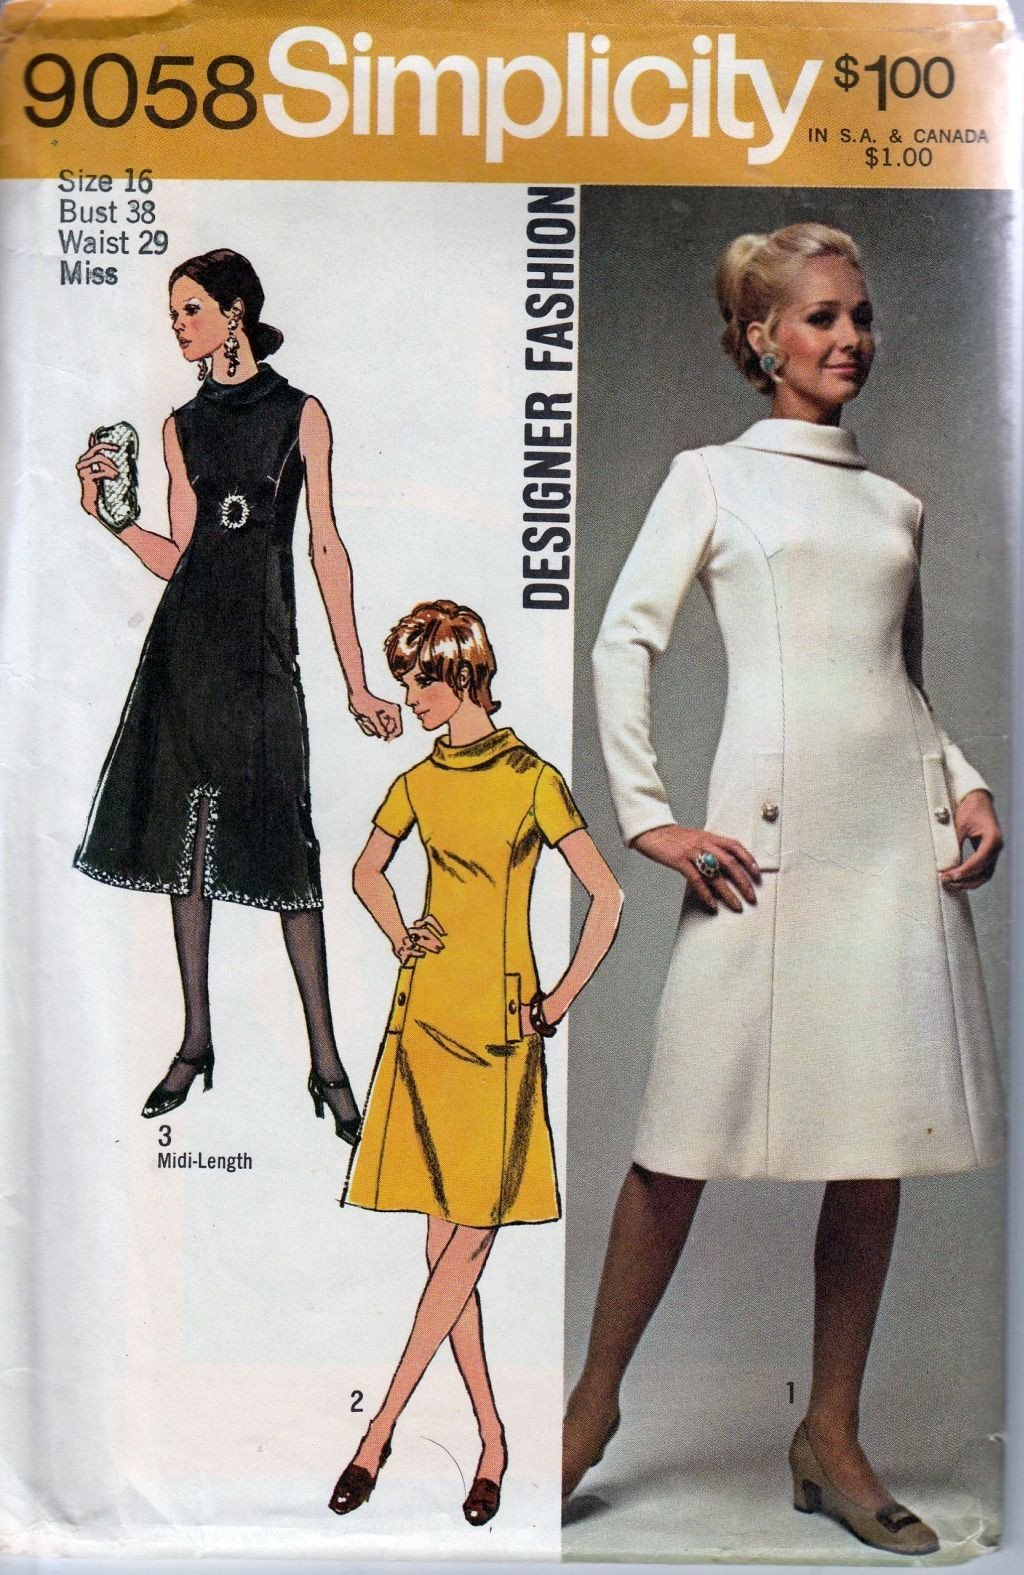 Simplicity 9058 Vintage 1970's Sewing Pattern Ladies Princess Seam Dress Roll Collar - VintageStitching - Vintage Sewing Patterns